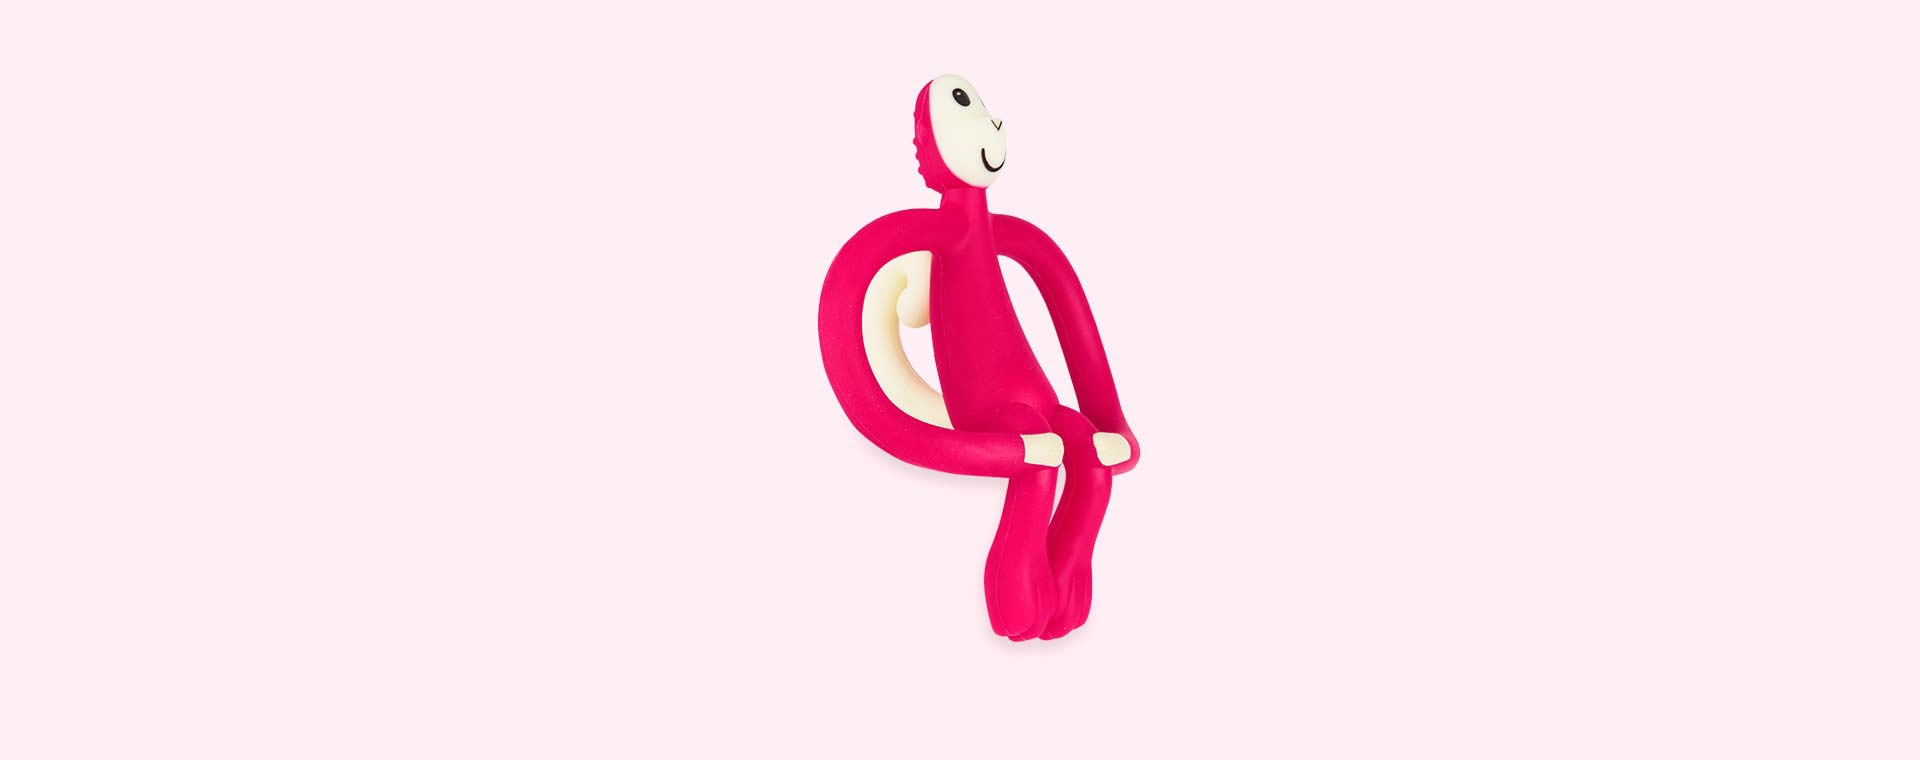 Rubine Red Matchstick Monkey Monkey Teether